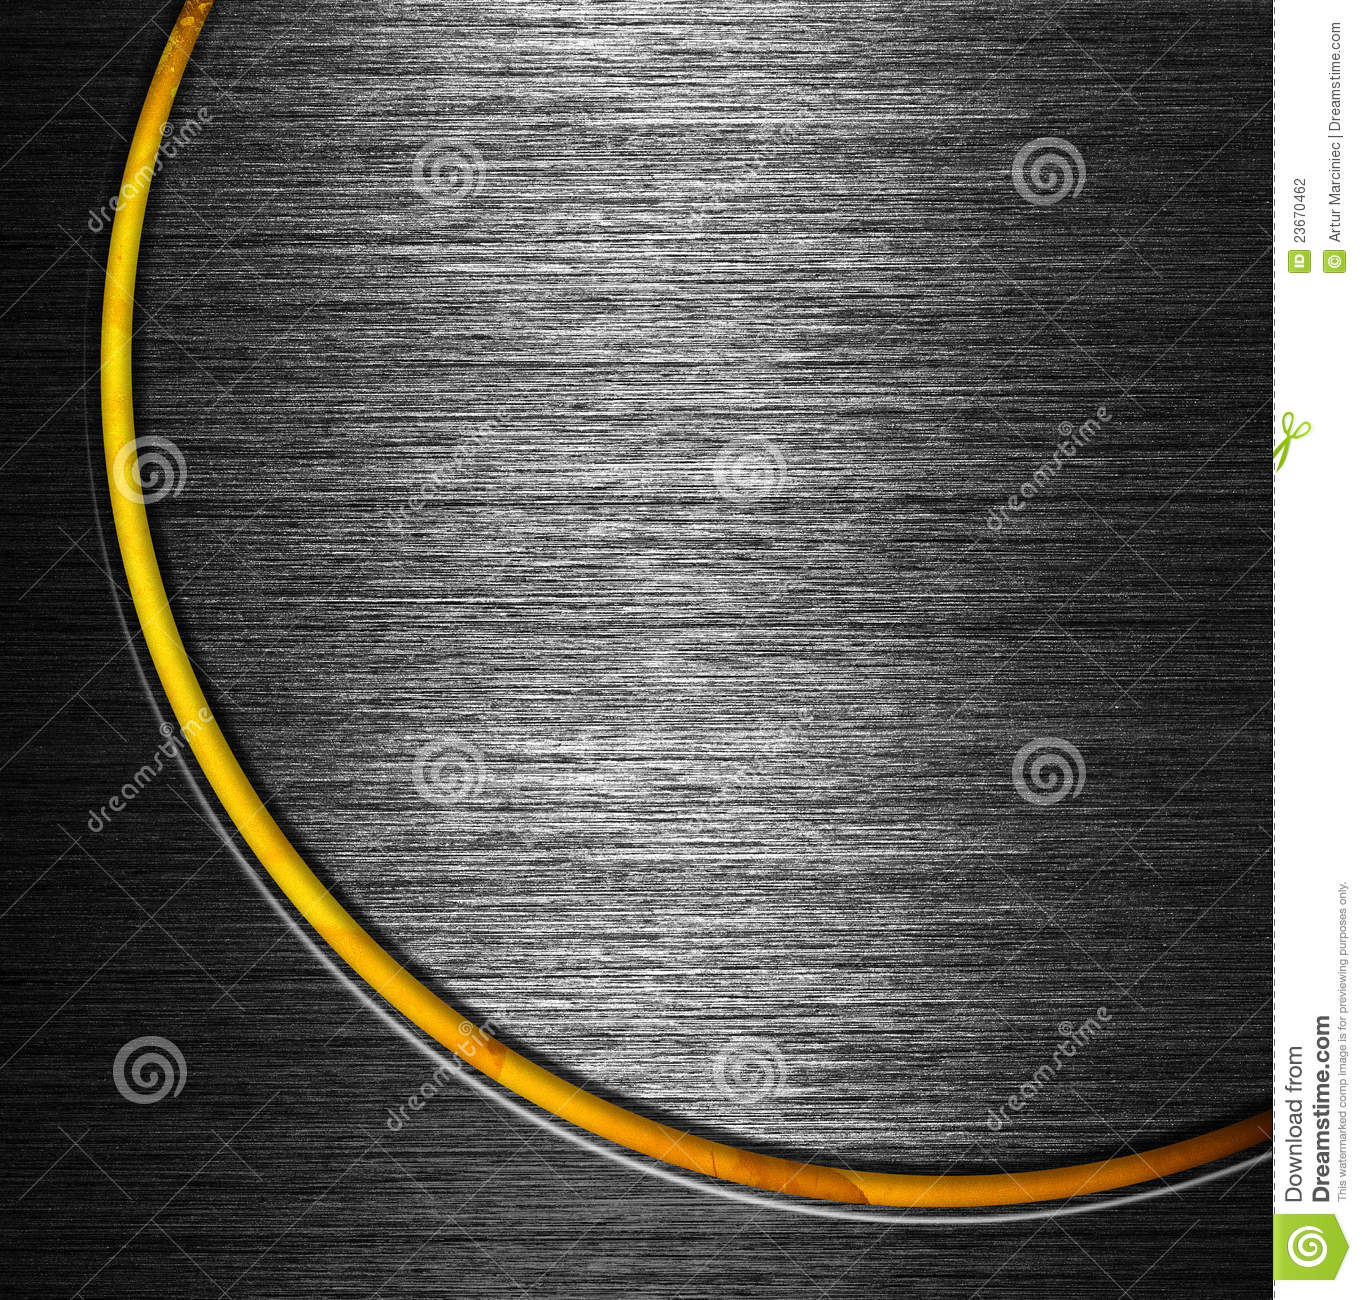 brushed metal plate template background stock photo image of plate